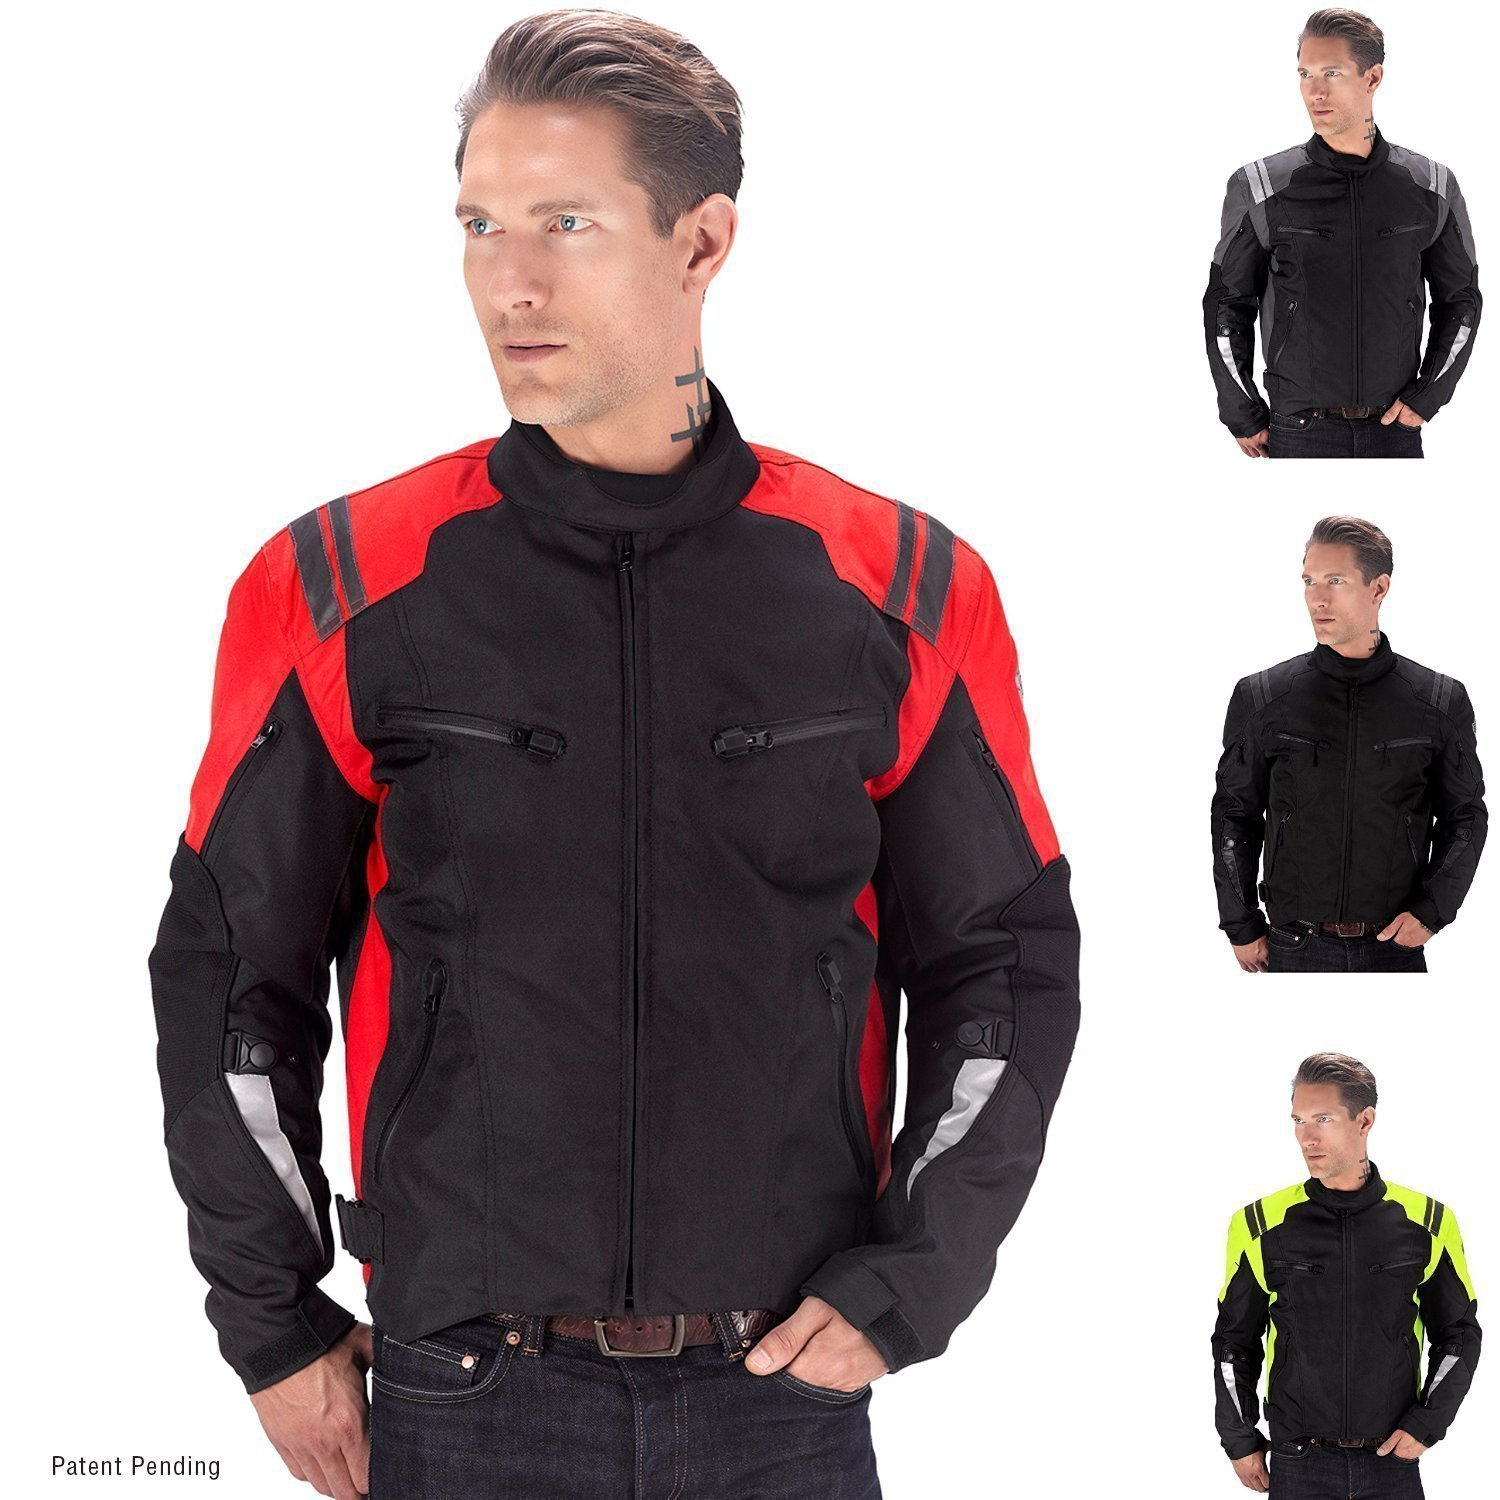 Viking Cycle Ironborn Motorcycle Textile Jacket For Men VC512G-L